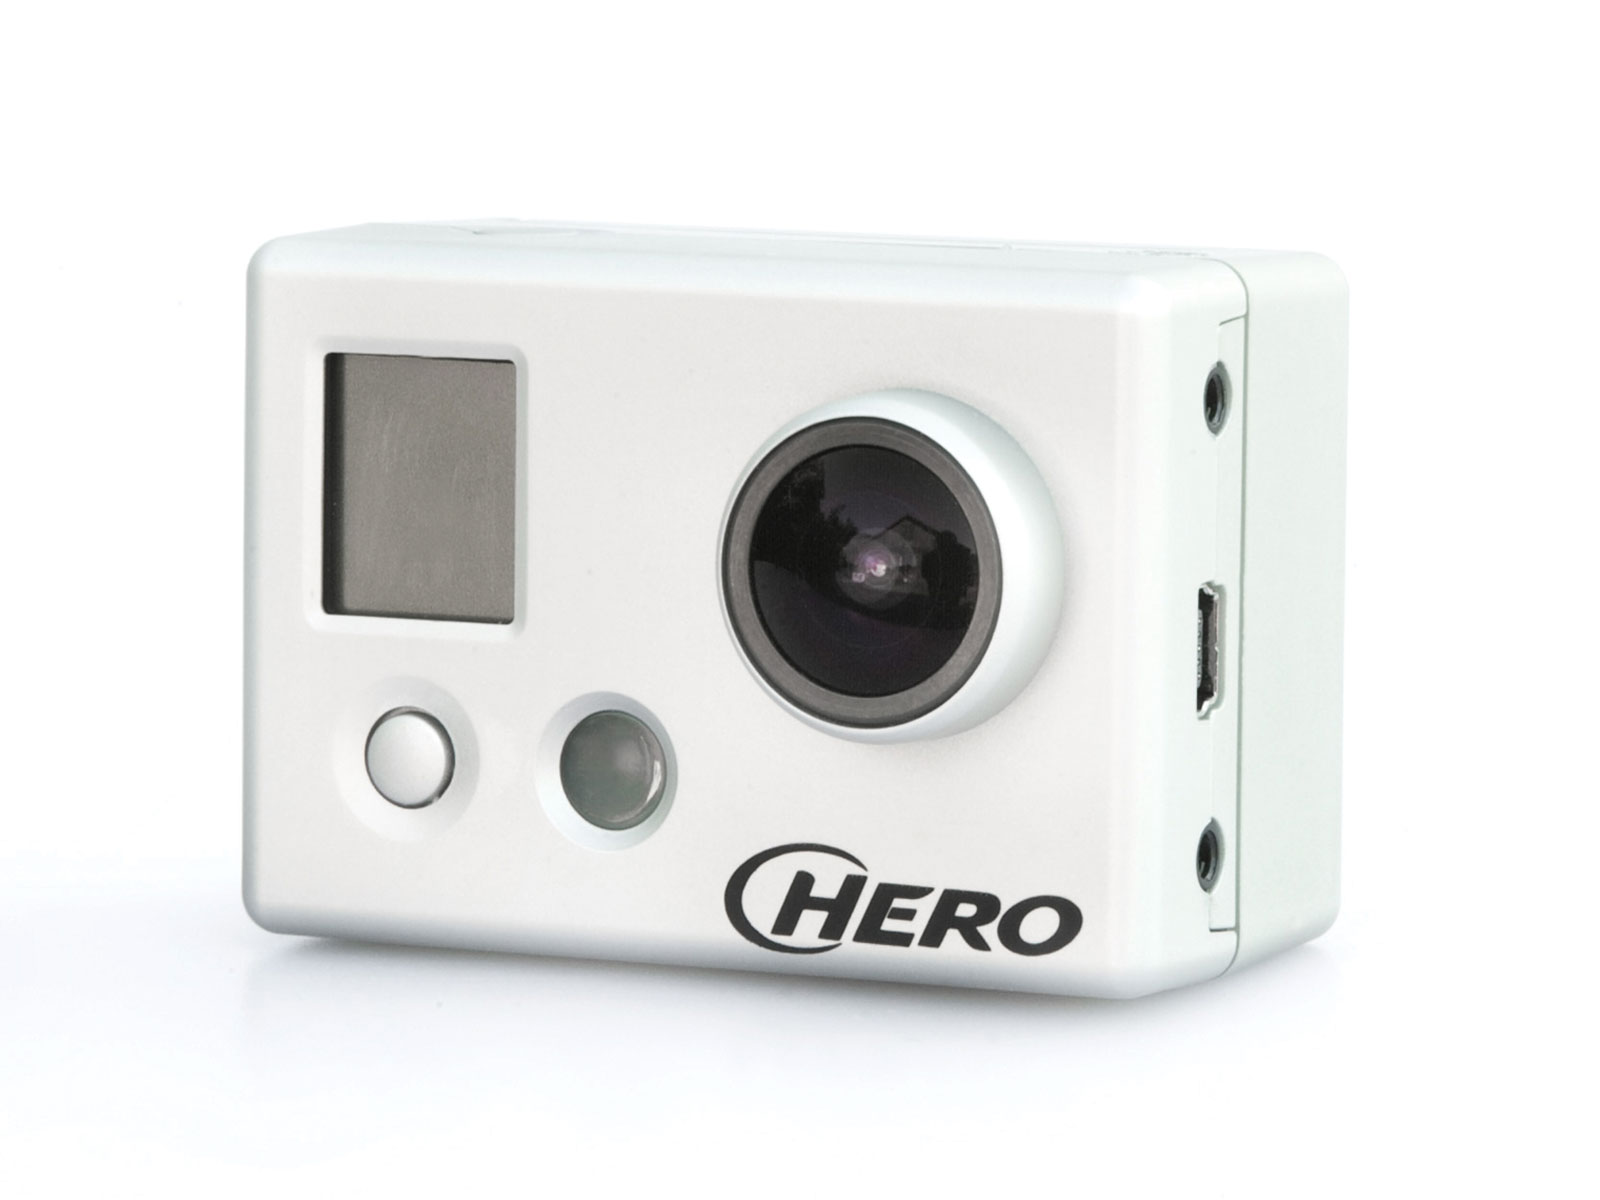 eurp_0912_01_o+gopro_hd_hero_motorsports_video_camera+hero